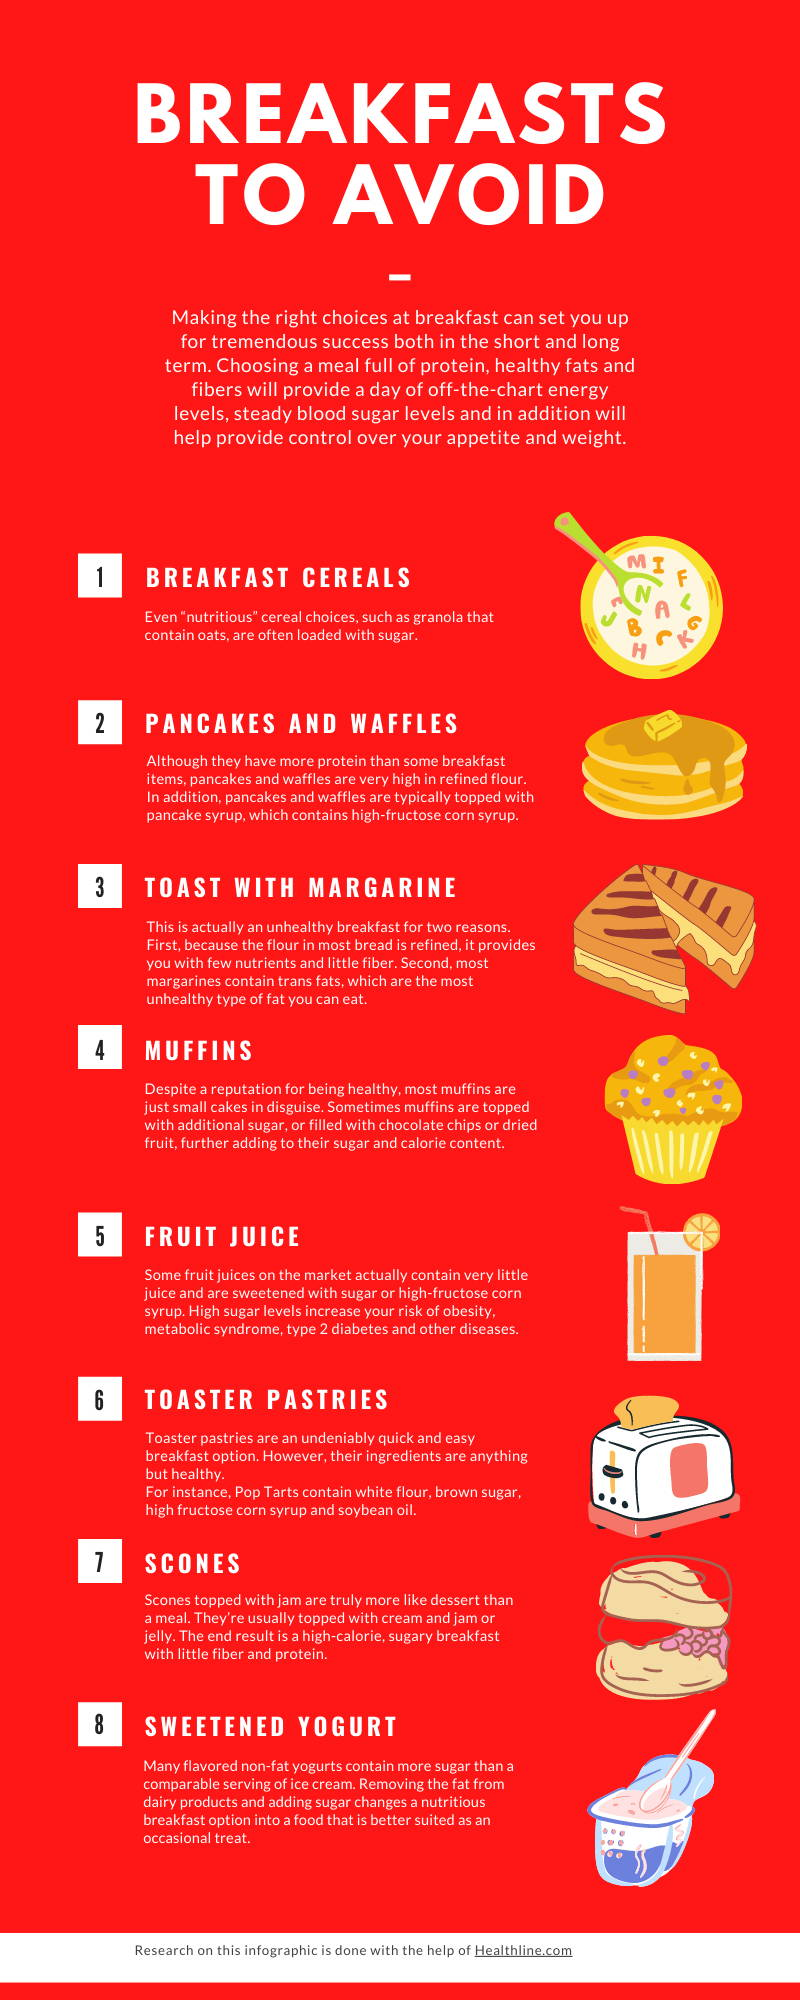 Breakfasts to Avoid Infographic